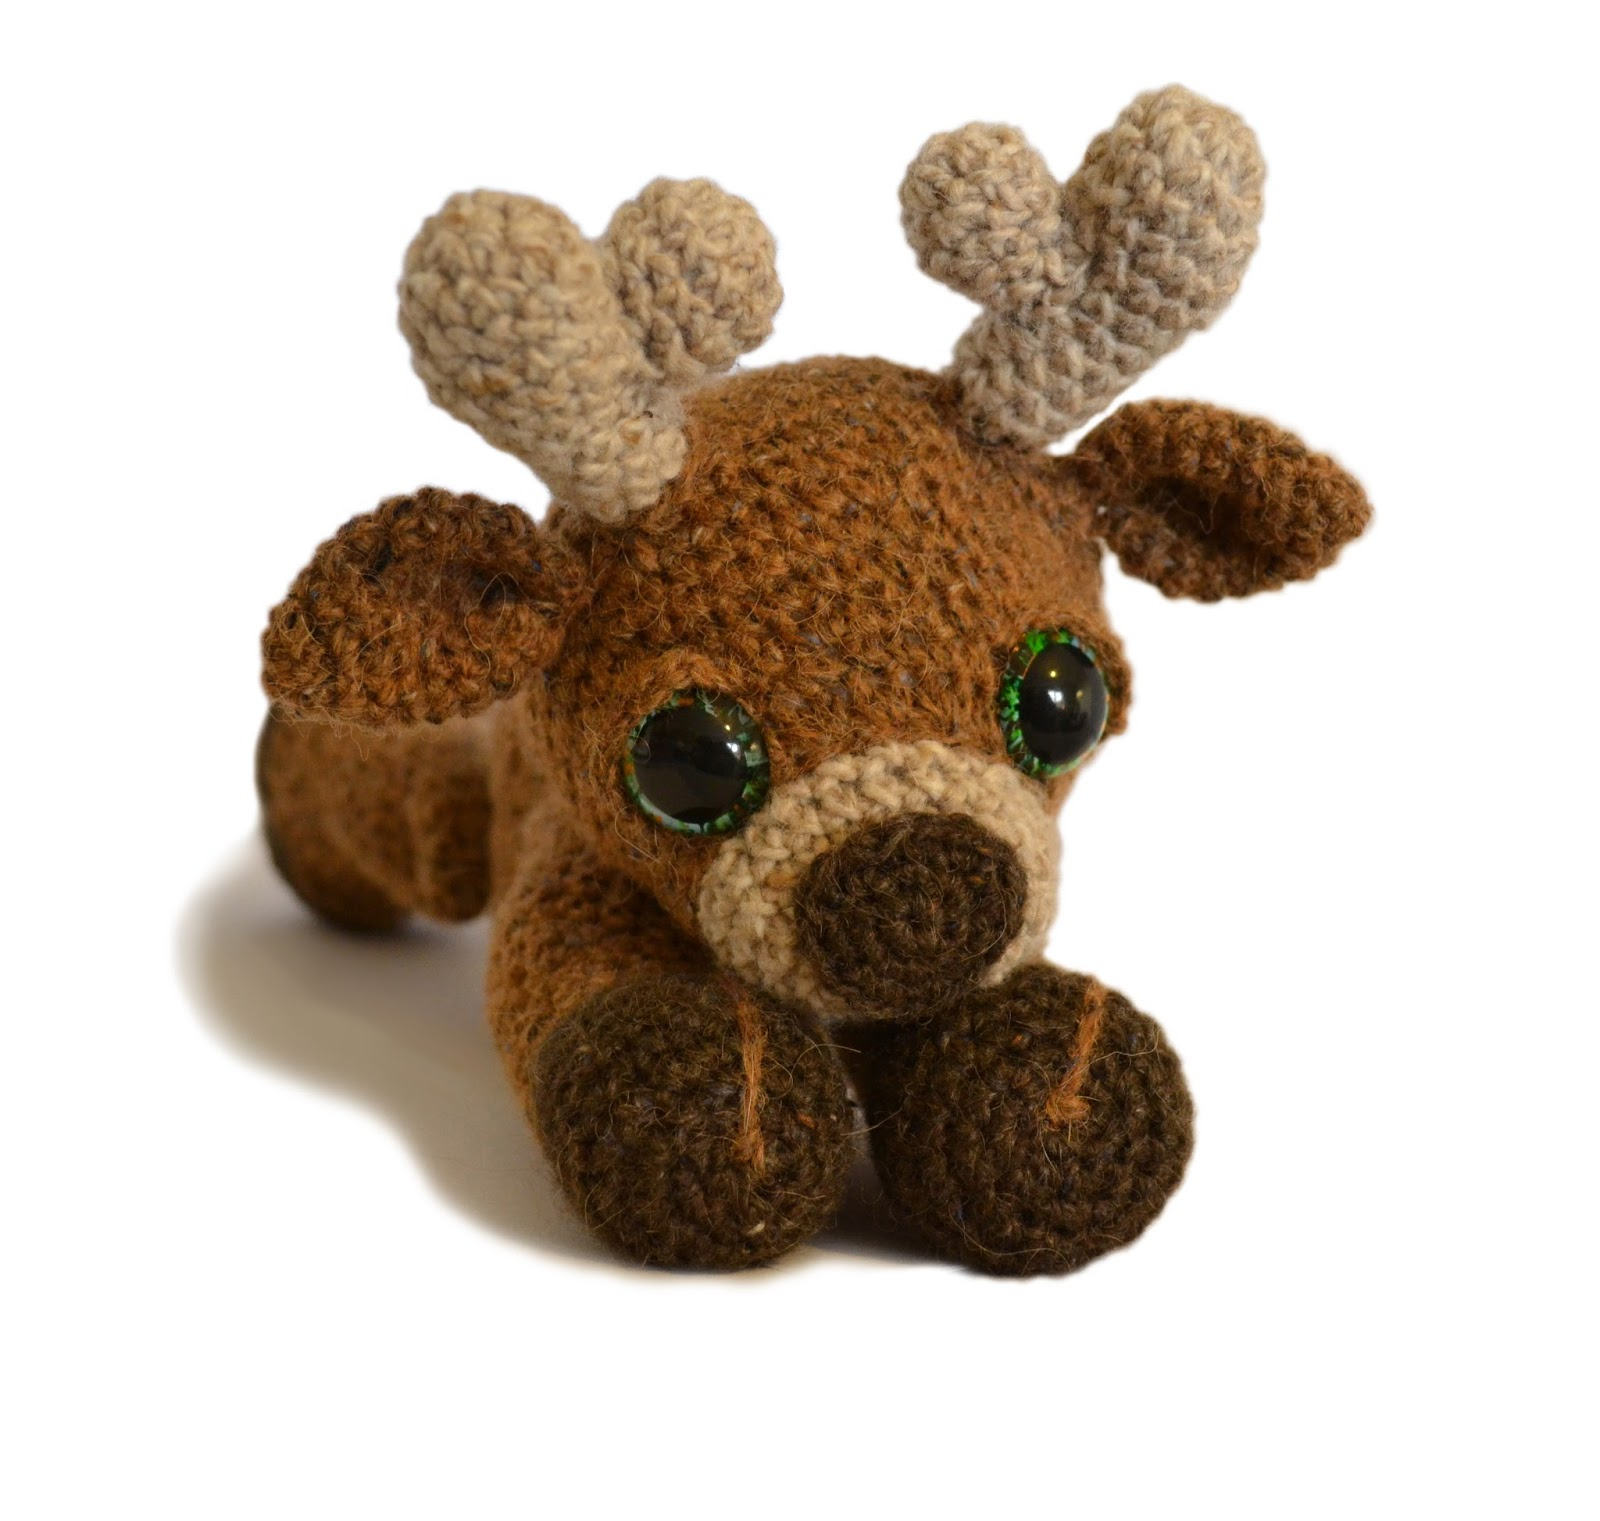 Patchwork moose marley the reindeer 325mm d crochet hook for crochet eyes option small amount of black and coloured yarn for crochet eyes option or 2 x 20mm safety eyes bankloansurffo Choice Image